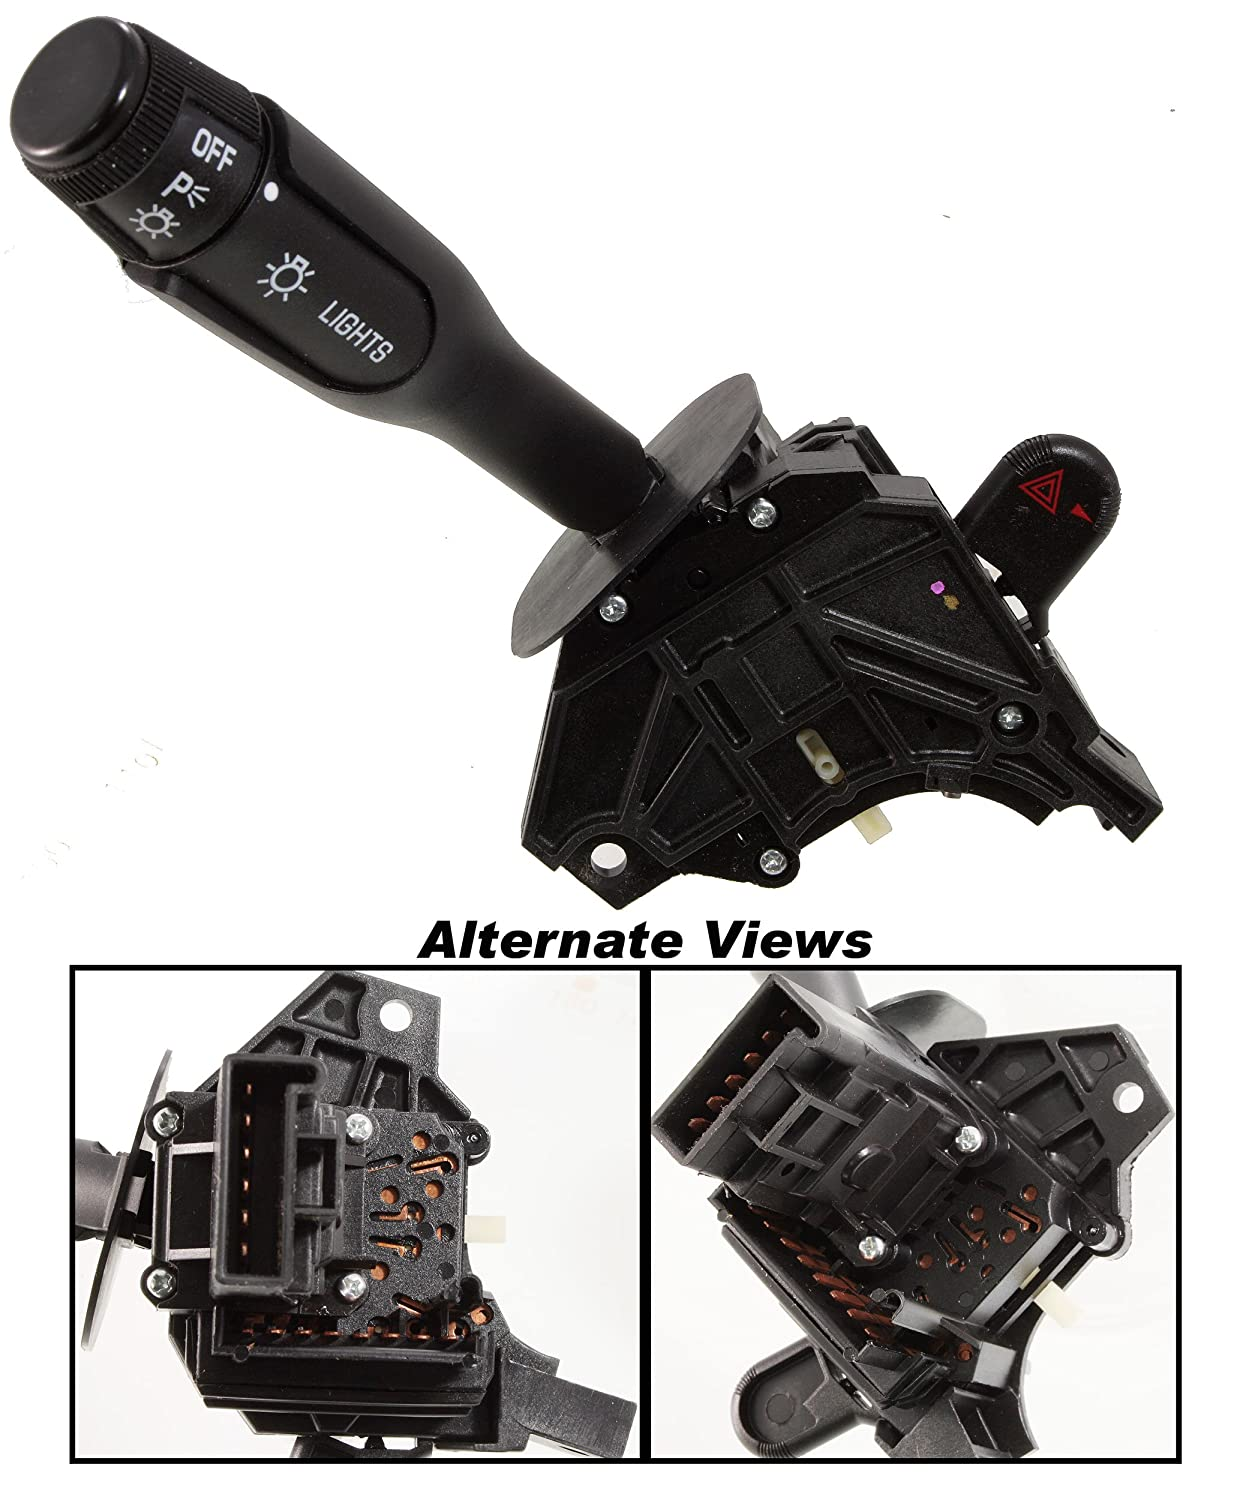 APDTY 1995988 Multifunction Switch Fits 1994-1995 Olds Achieva Without Cruise 1994-1995 Pontiac Grand Am Without Cruise Control Includes Turn Signal Hazard Headlight Headlamp High Low Beam Control